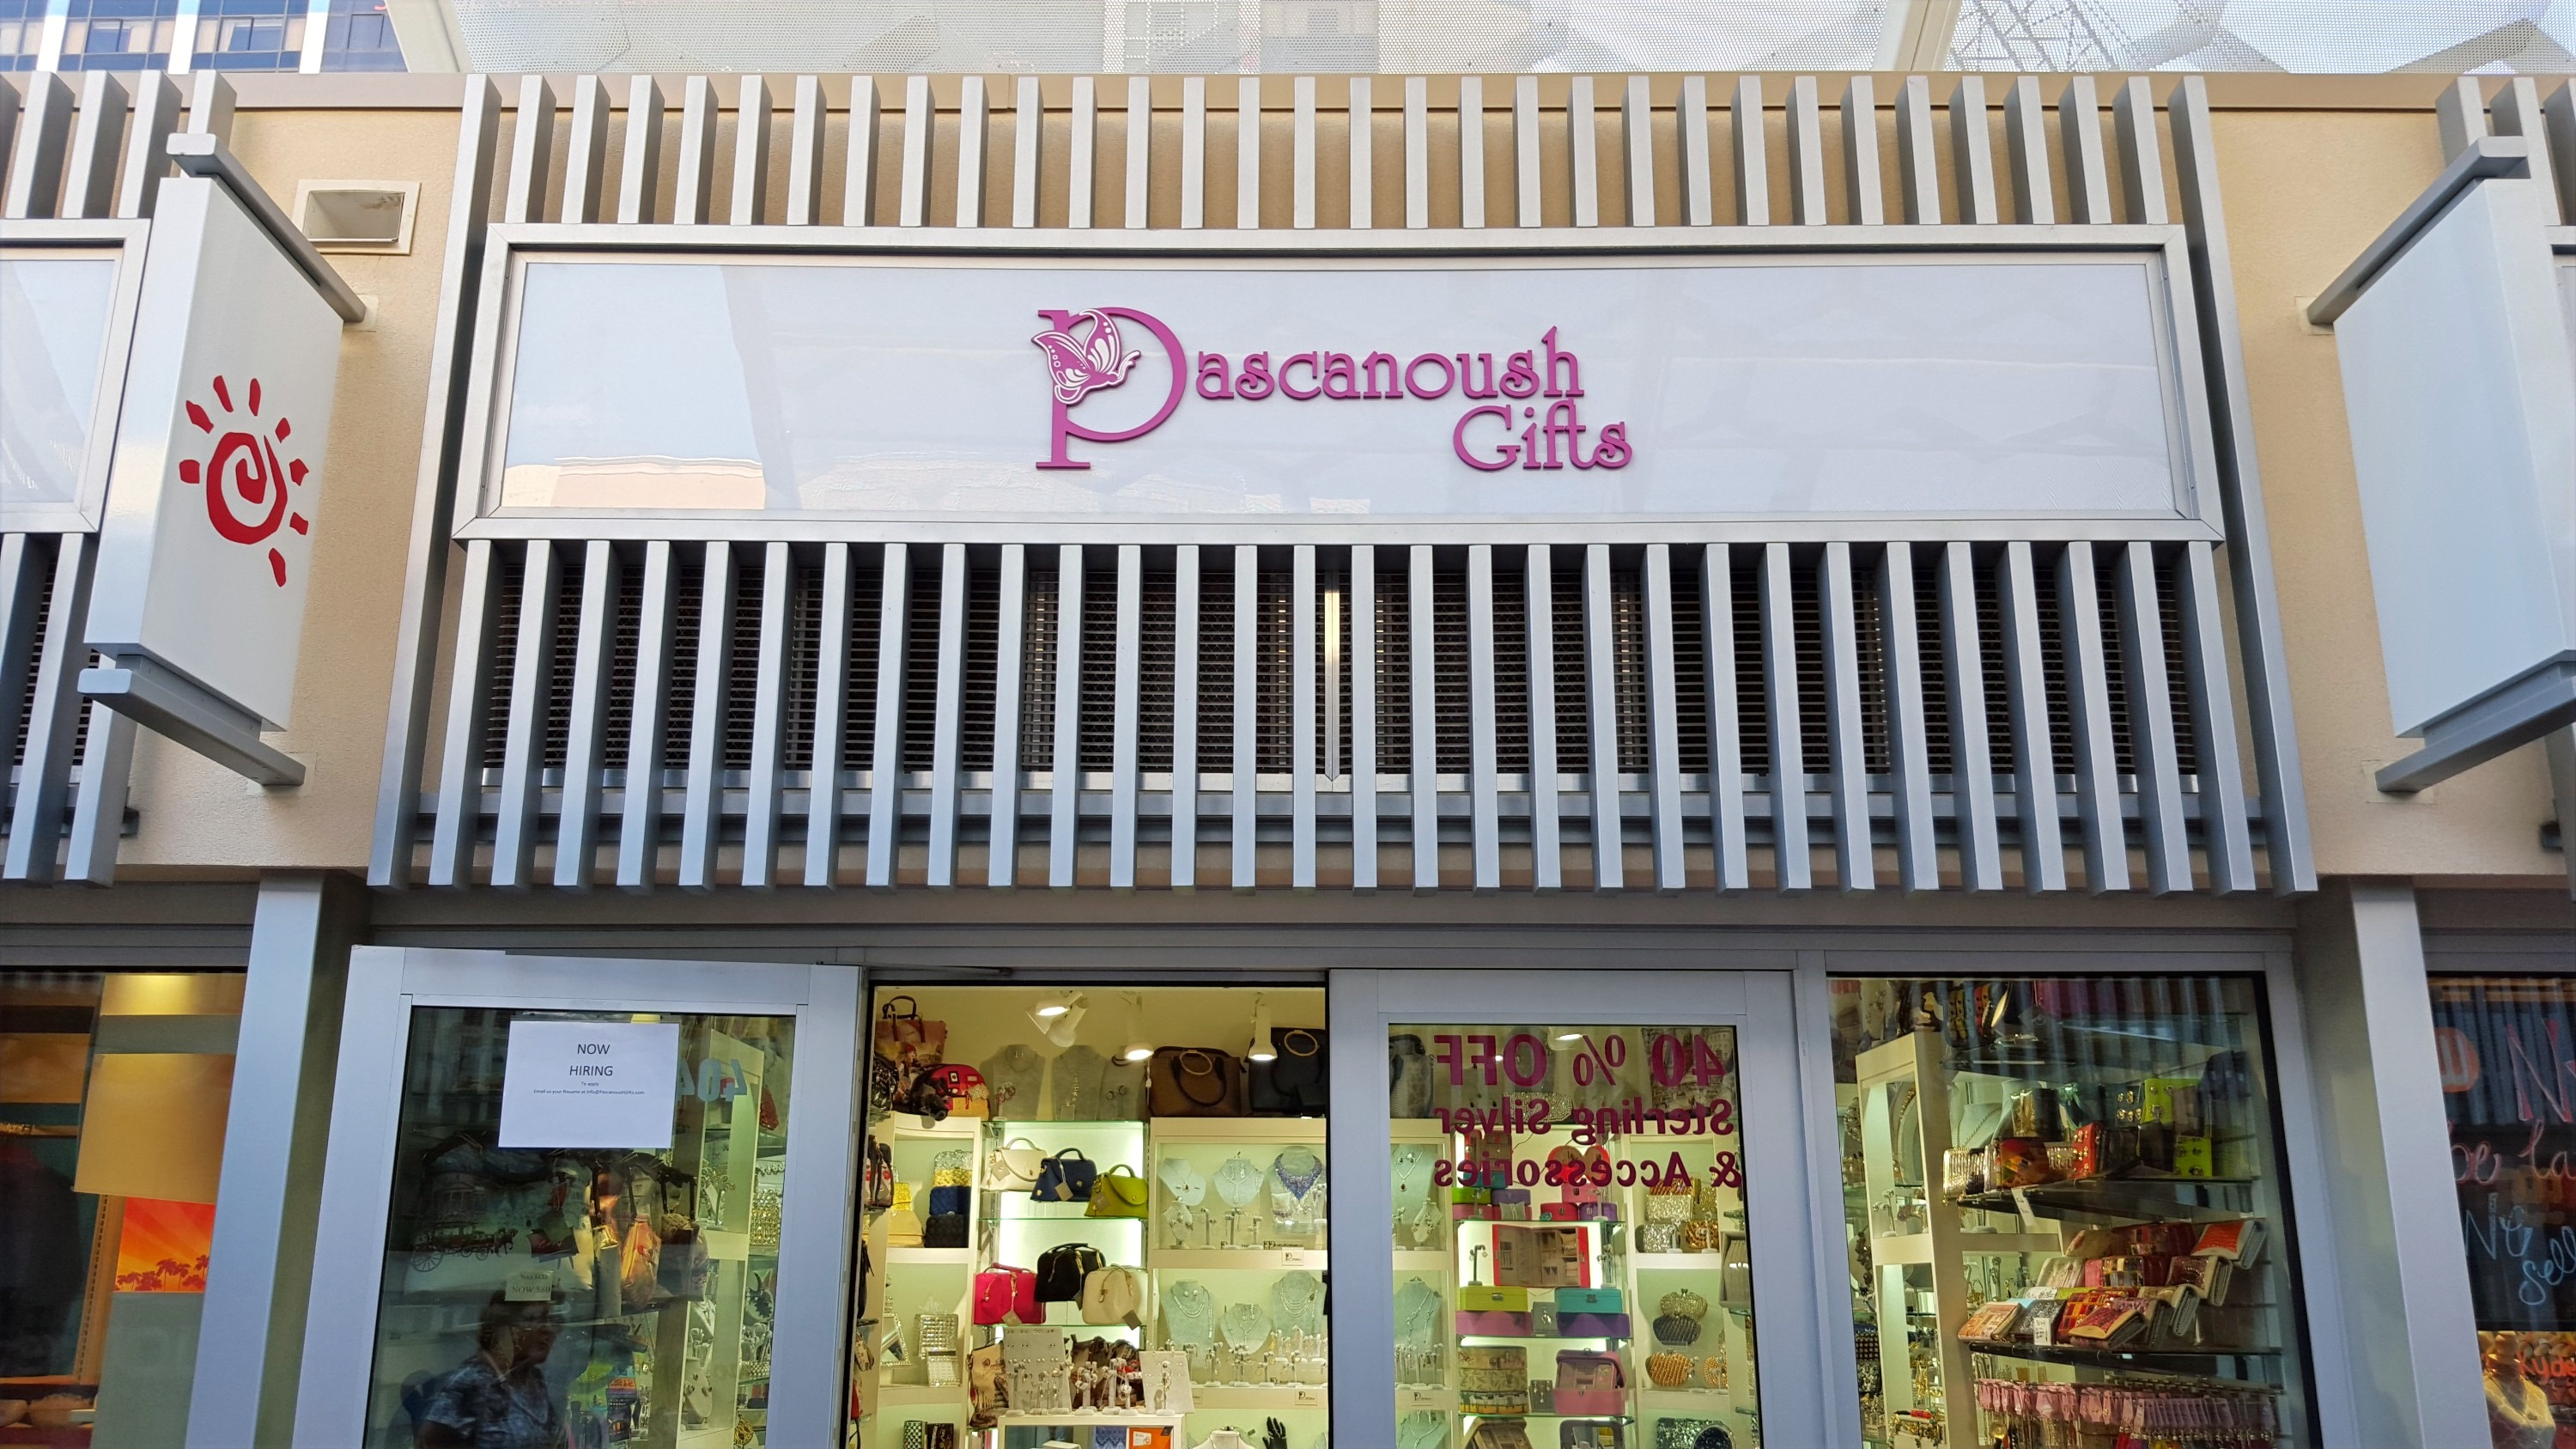 Pascanoush Gifts